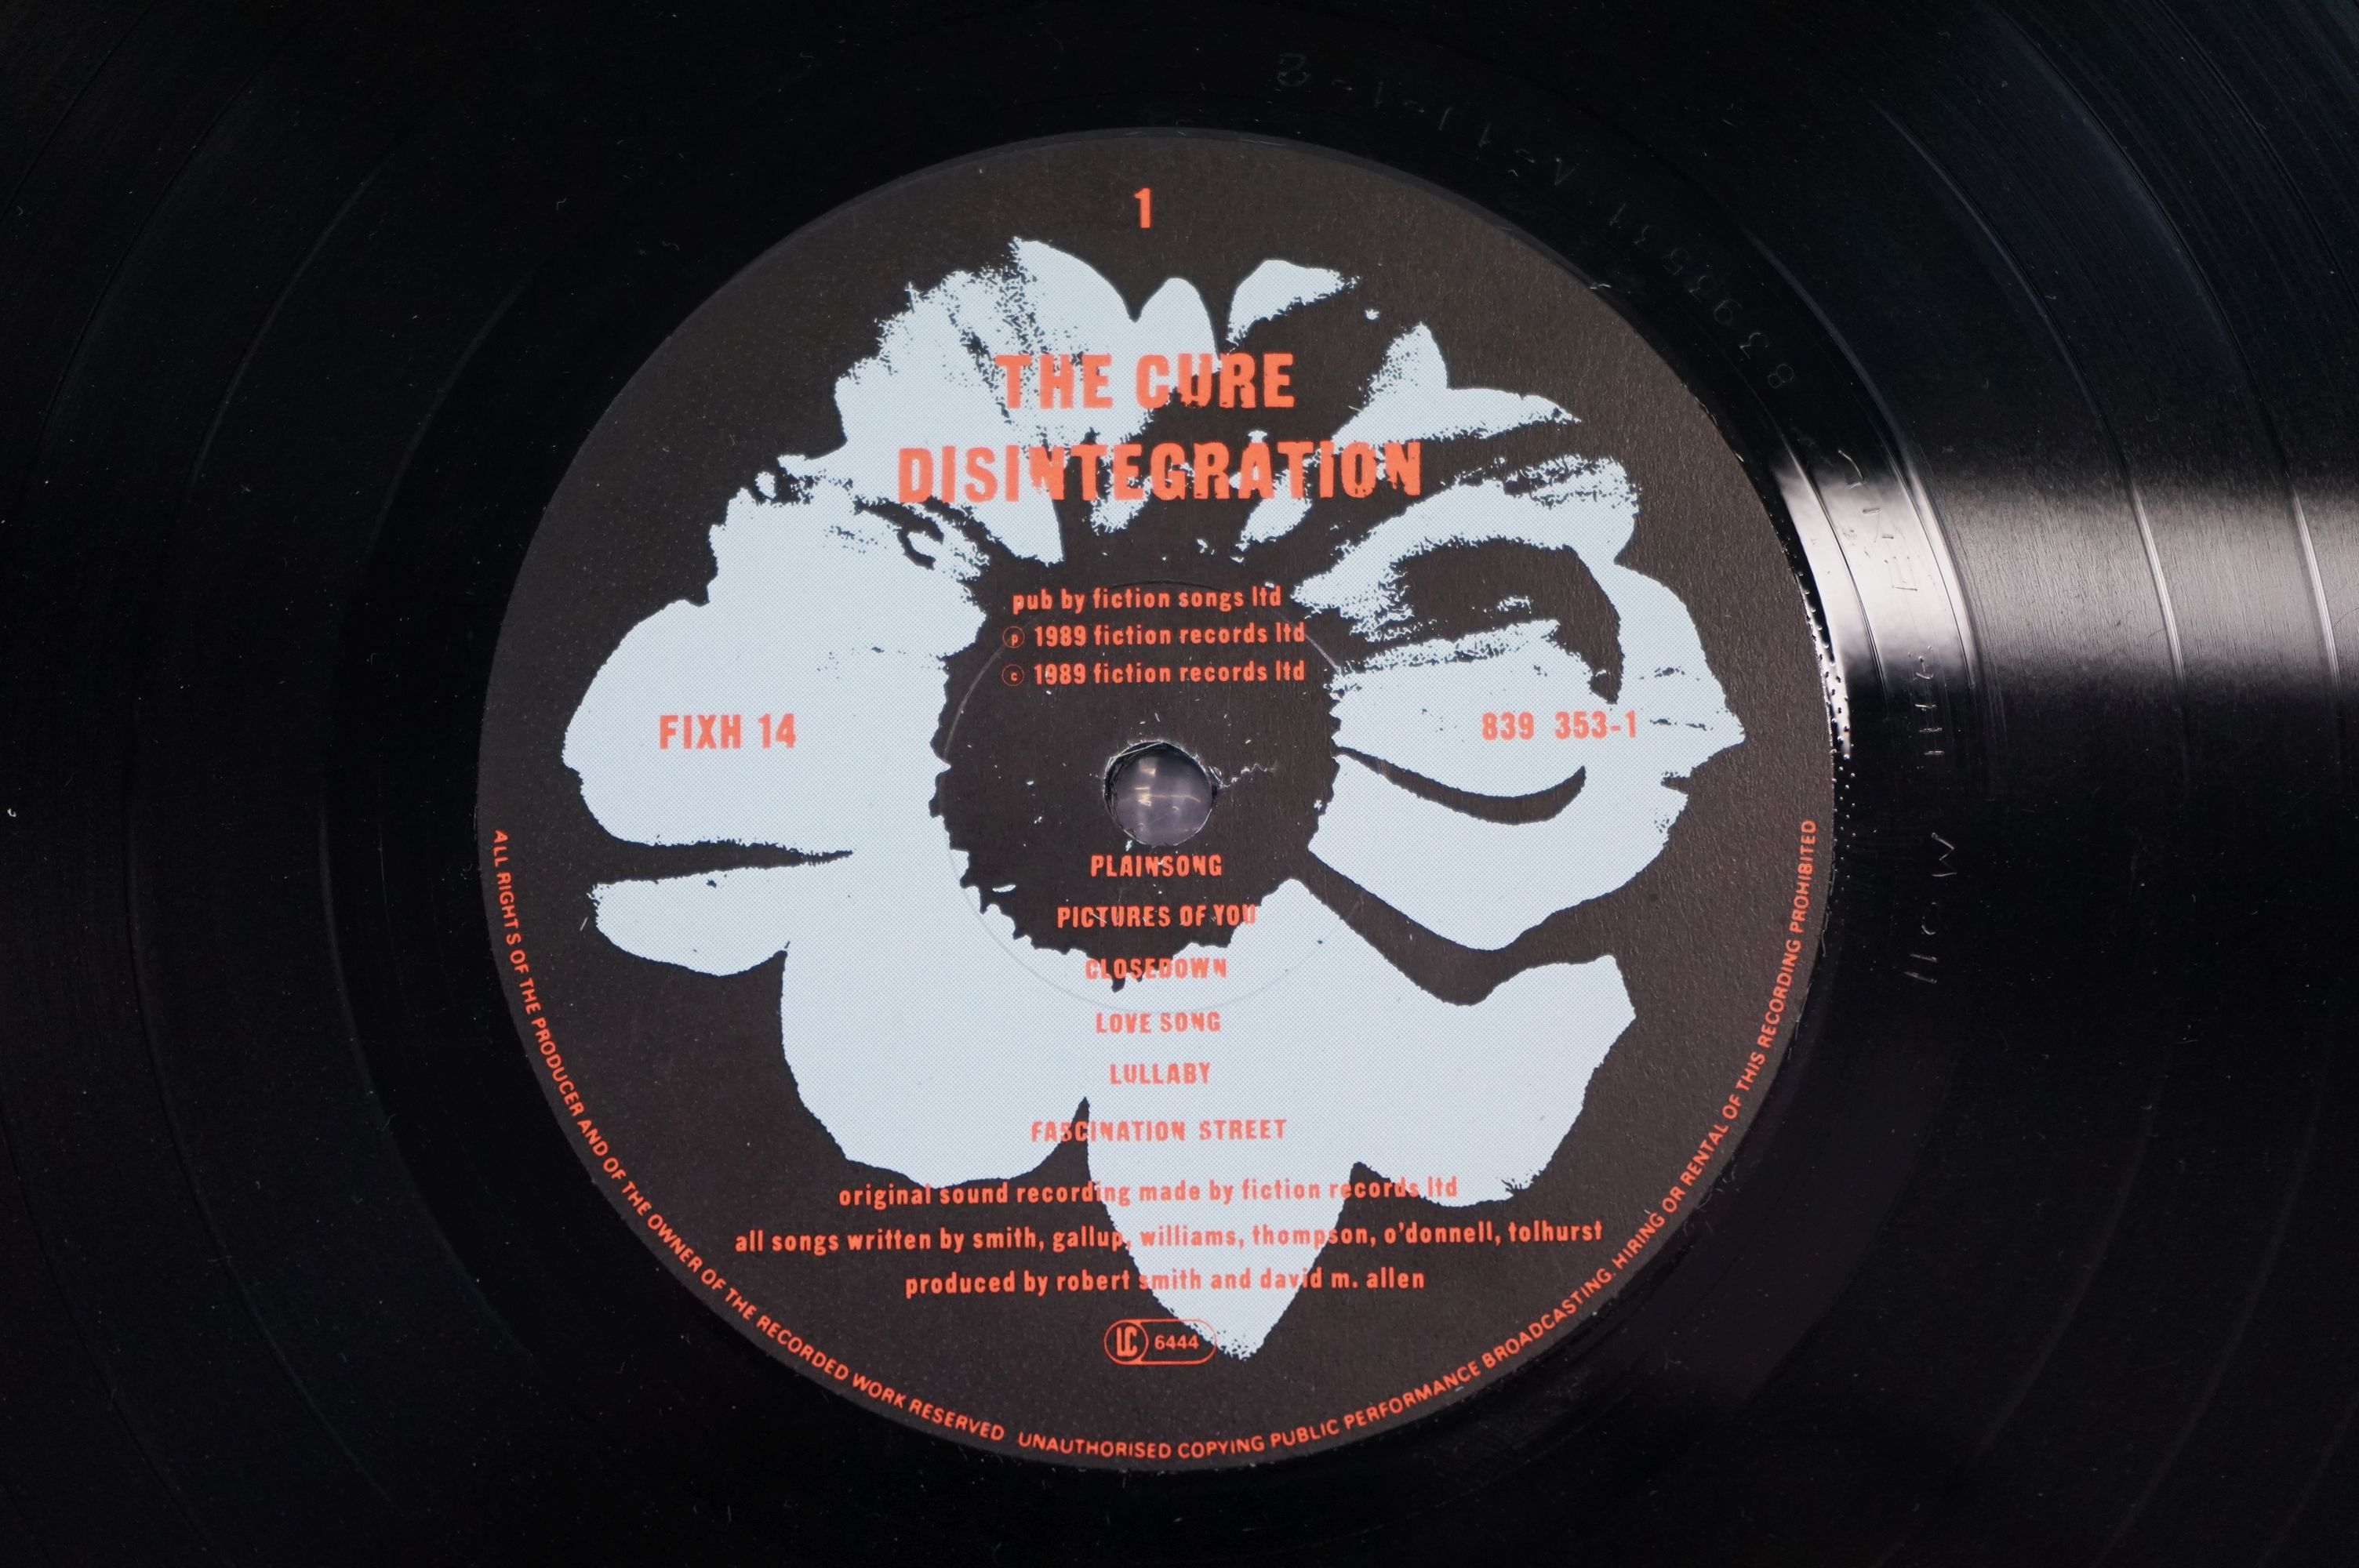 Vinyl - The Cure Disintegration LP on Fiction Records FIXH14 with inner, vg+ with light marks - Image 5 of 5